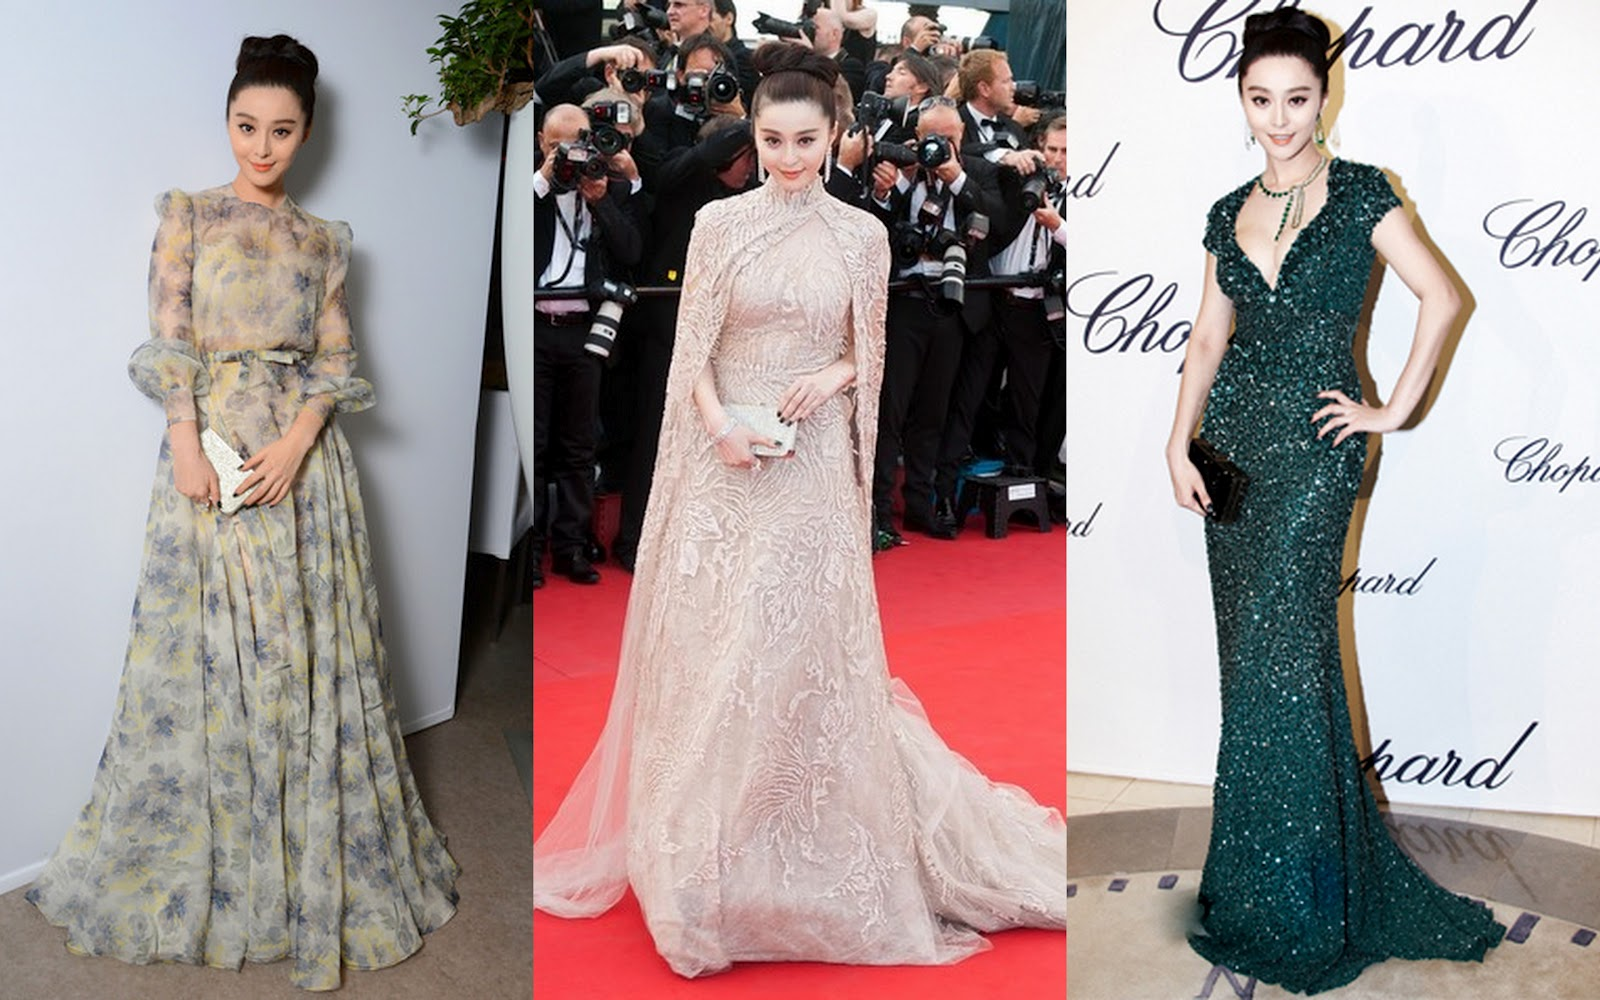 http://1.bp.blogspot.com/-DjfhCLBPamo/T7lr_BtN6GI/AAAAAAAAQec/MXUn0bbj-cw/s1600/Cannes+Film+Festival+2012+-+Part+Two+Red+Carpet+Fashion+5.jpg